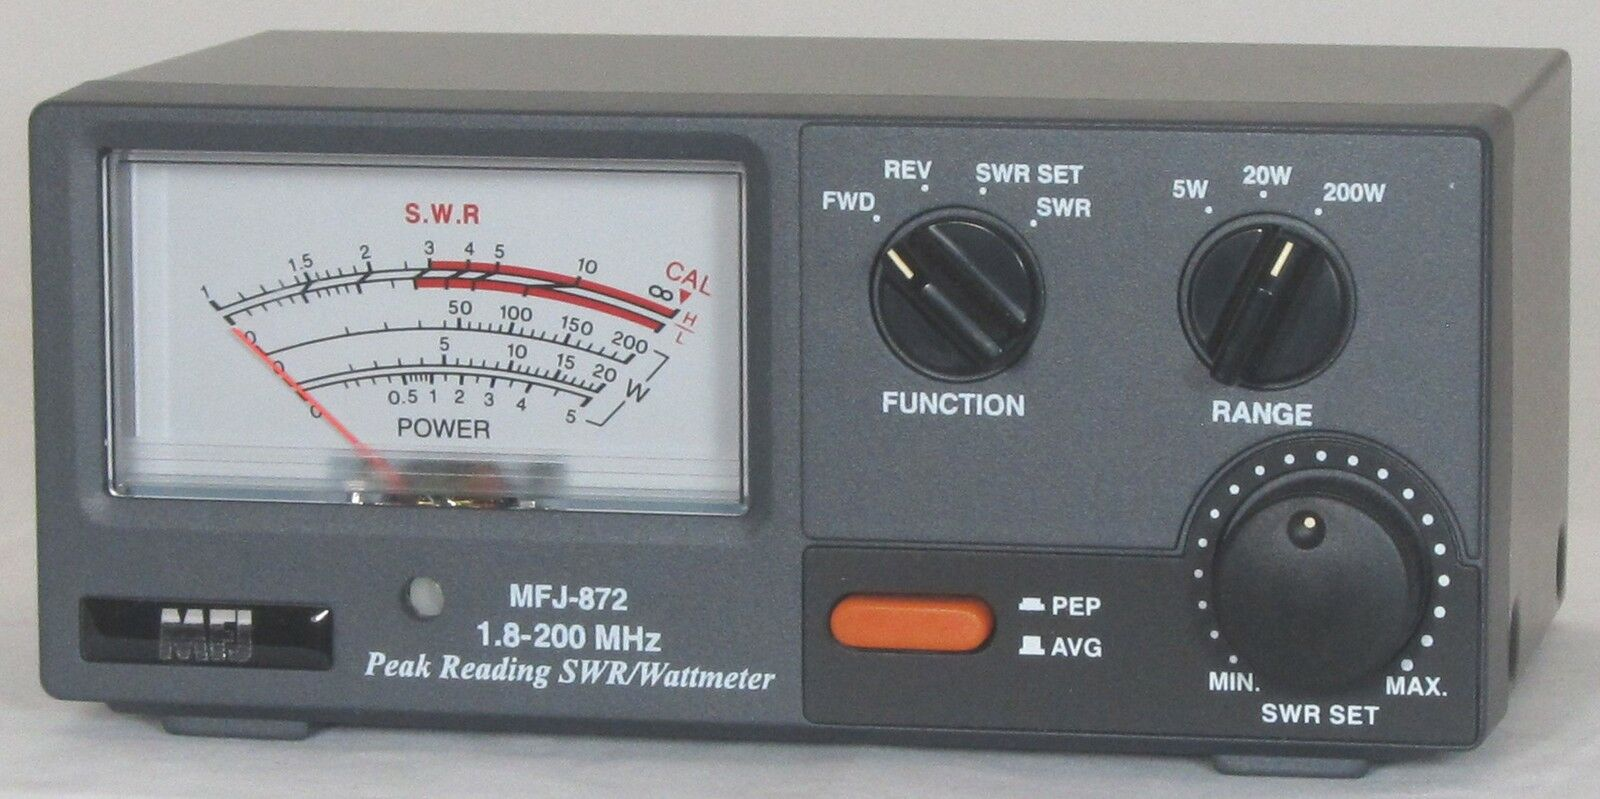 MFJ-872 SWR meter, 1.8-200Mhz, 5/20/200W. Available Now for 104.95